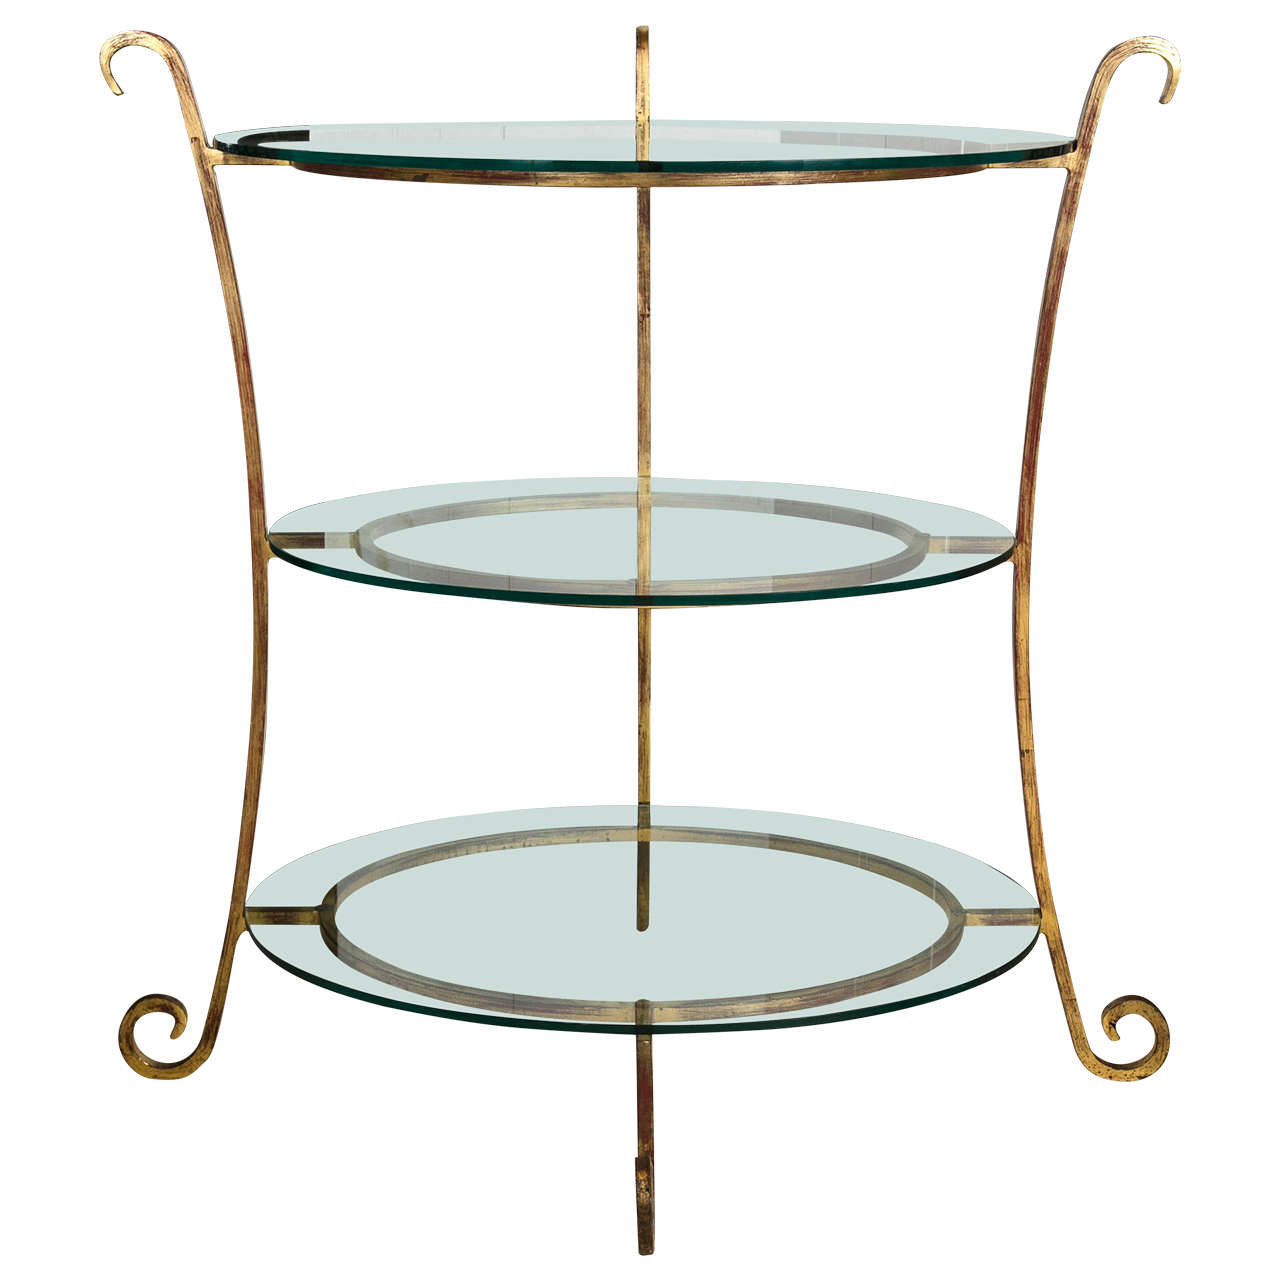 Etagere Fly Tootsie Tagre Fly Beautiful Une Tagre Fly La Bonne Humeur Du Design With